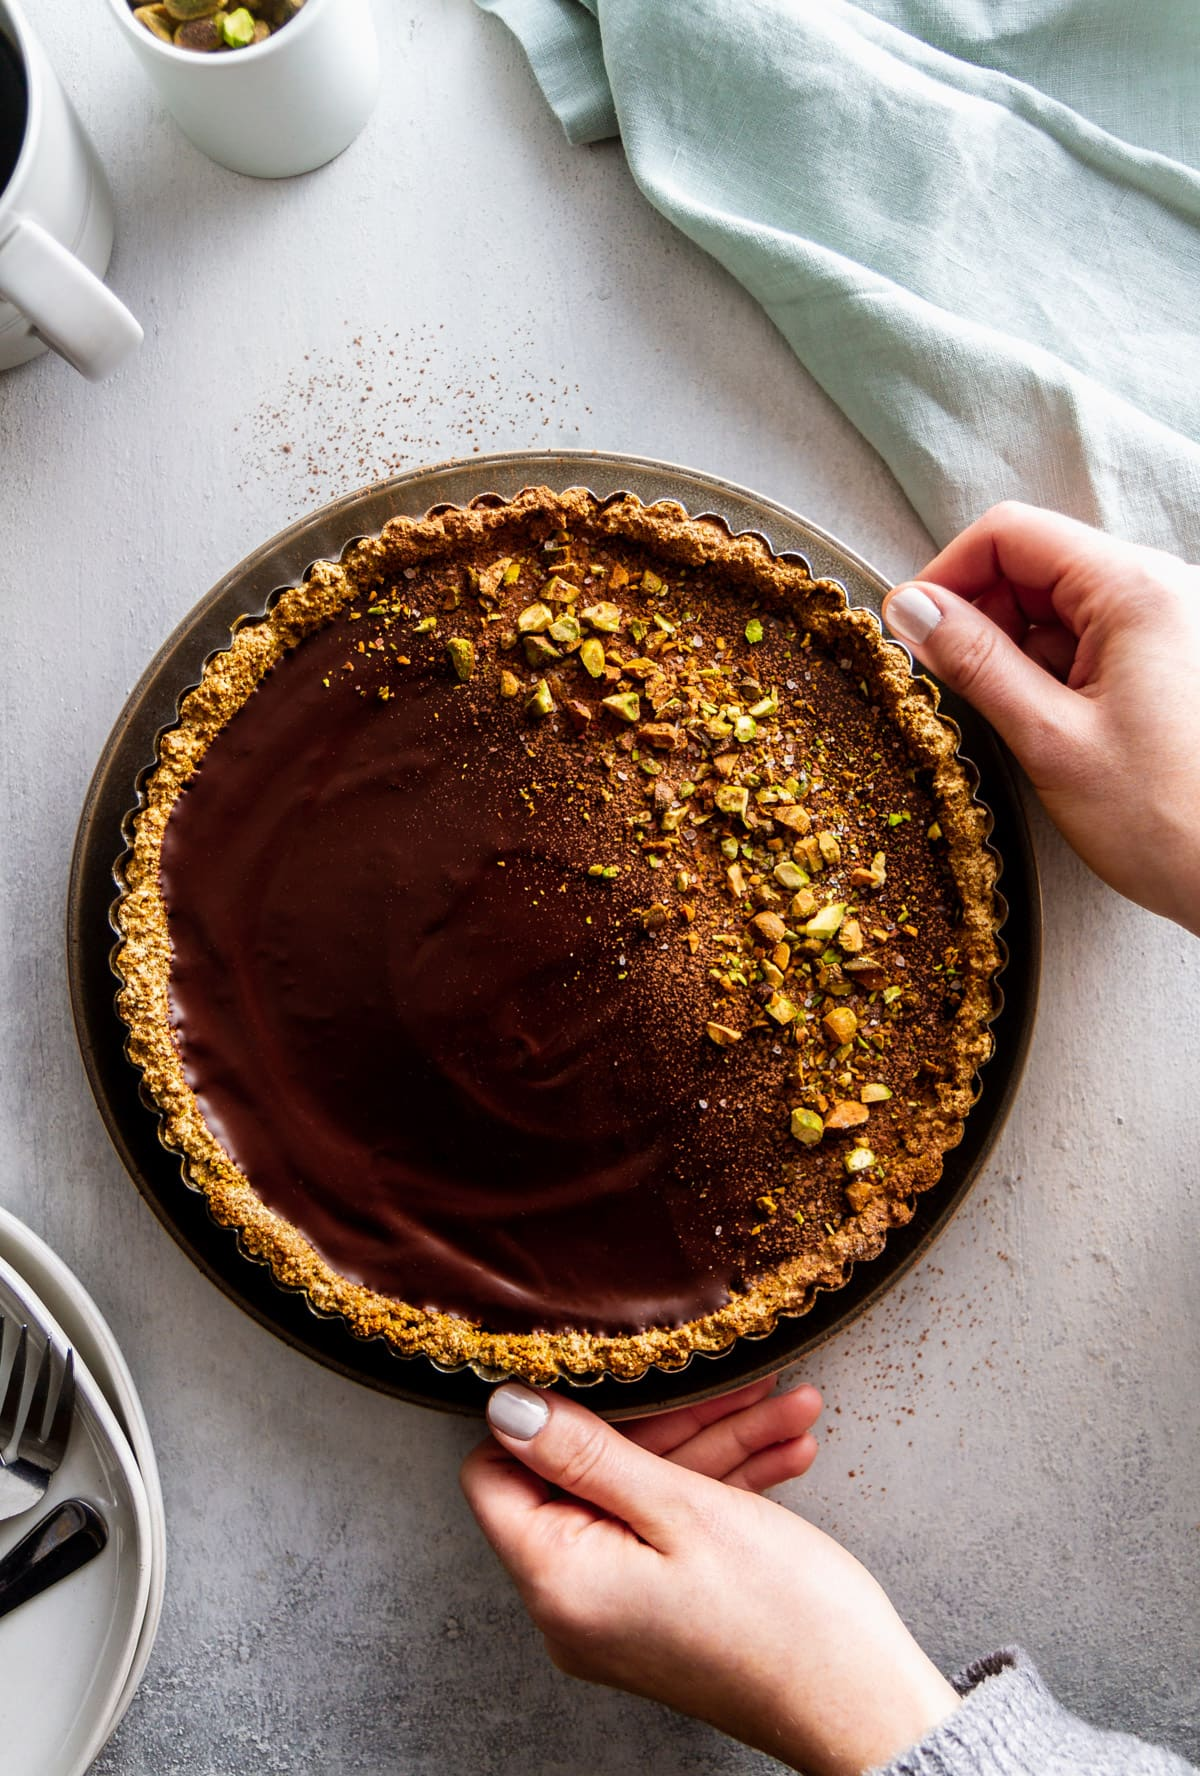 hands placing a chocolate tart on a surface